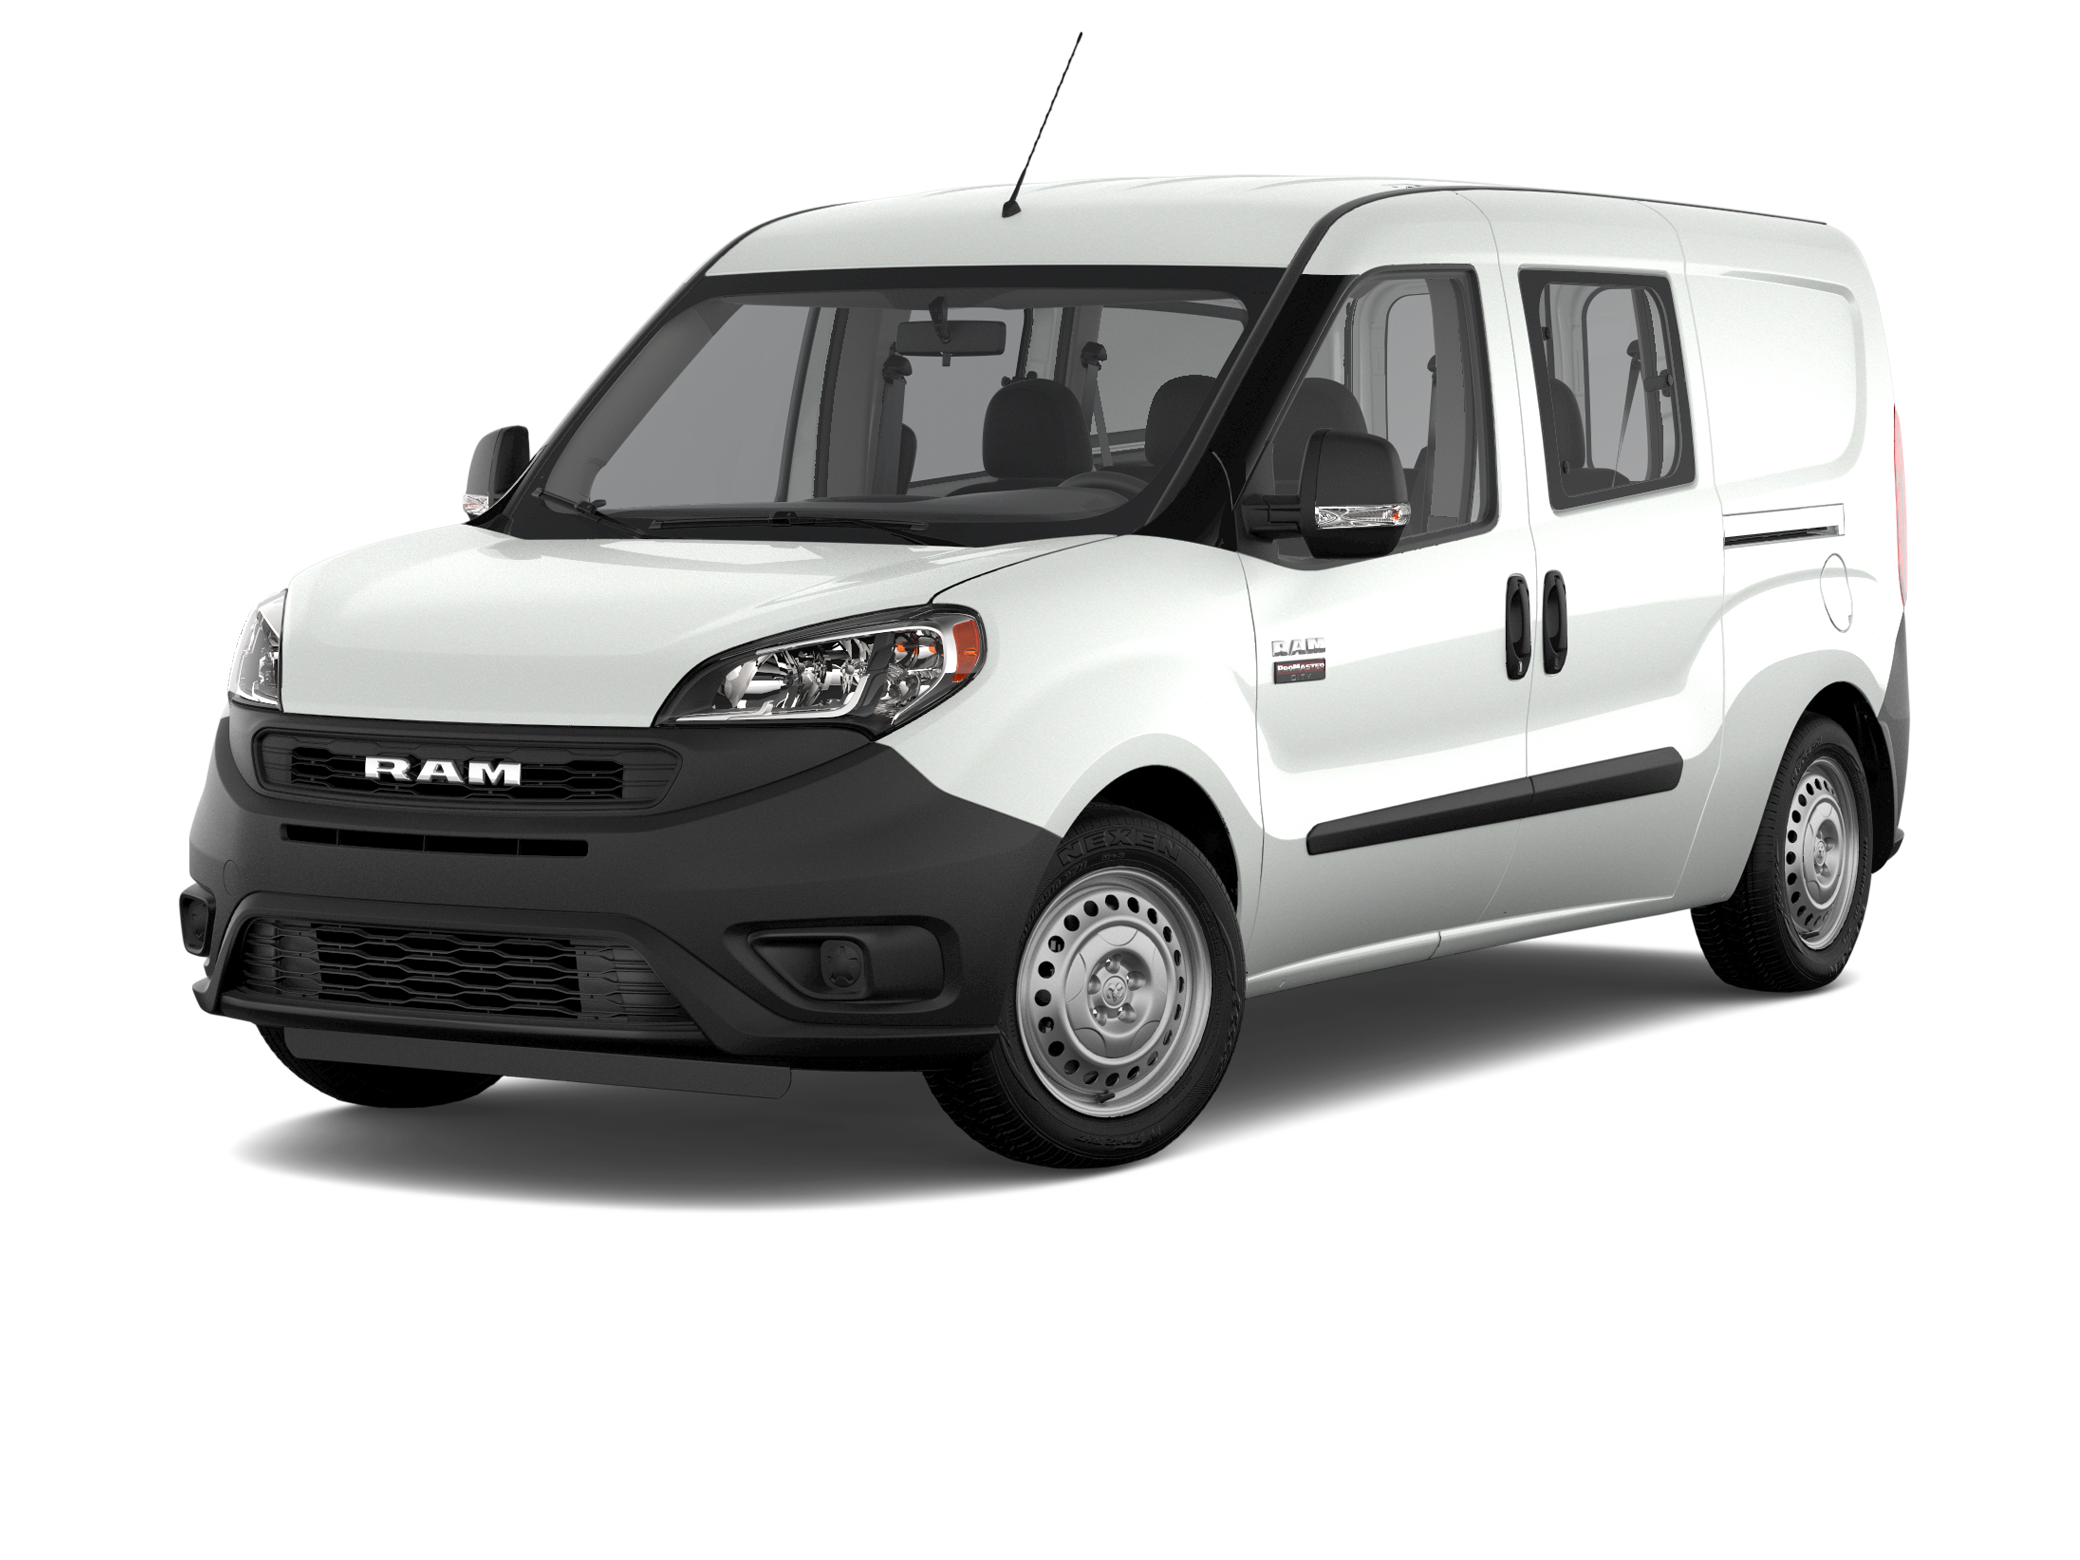 2019 Ram ProMaster City Incentives, Specials & Offers in